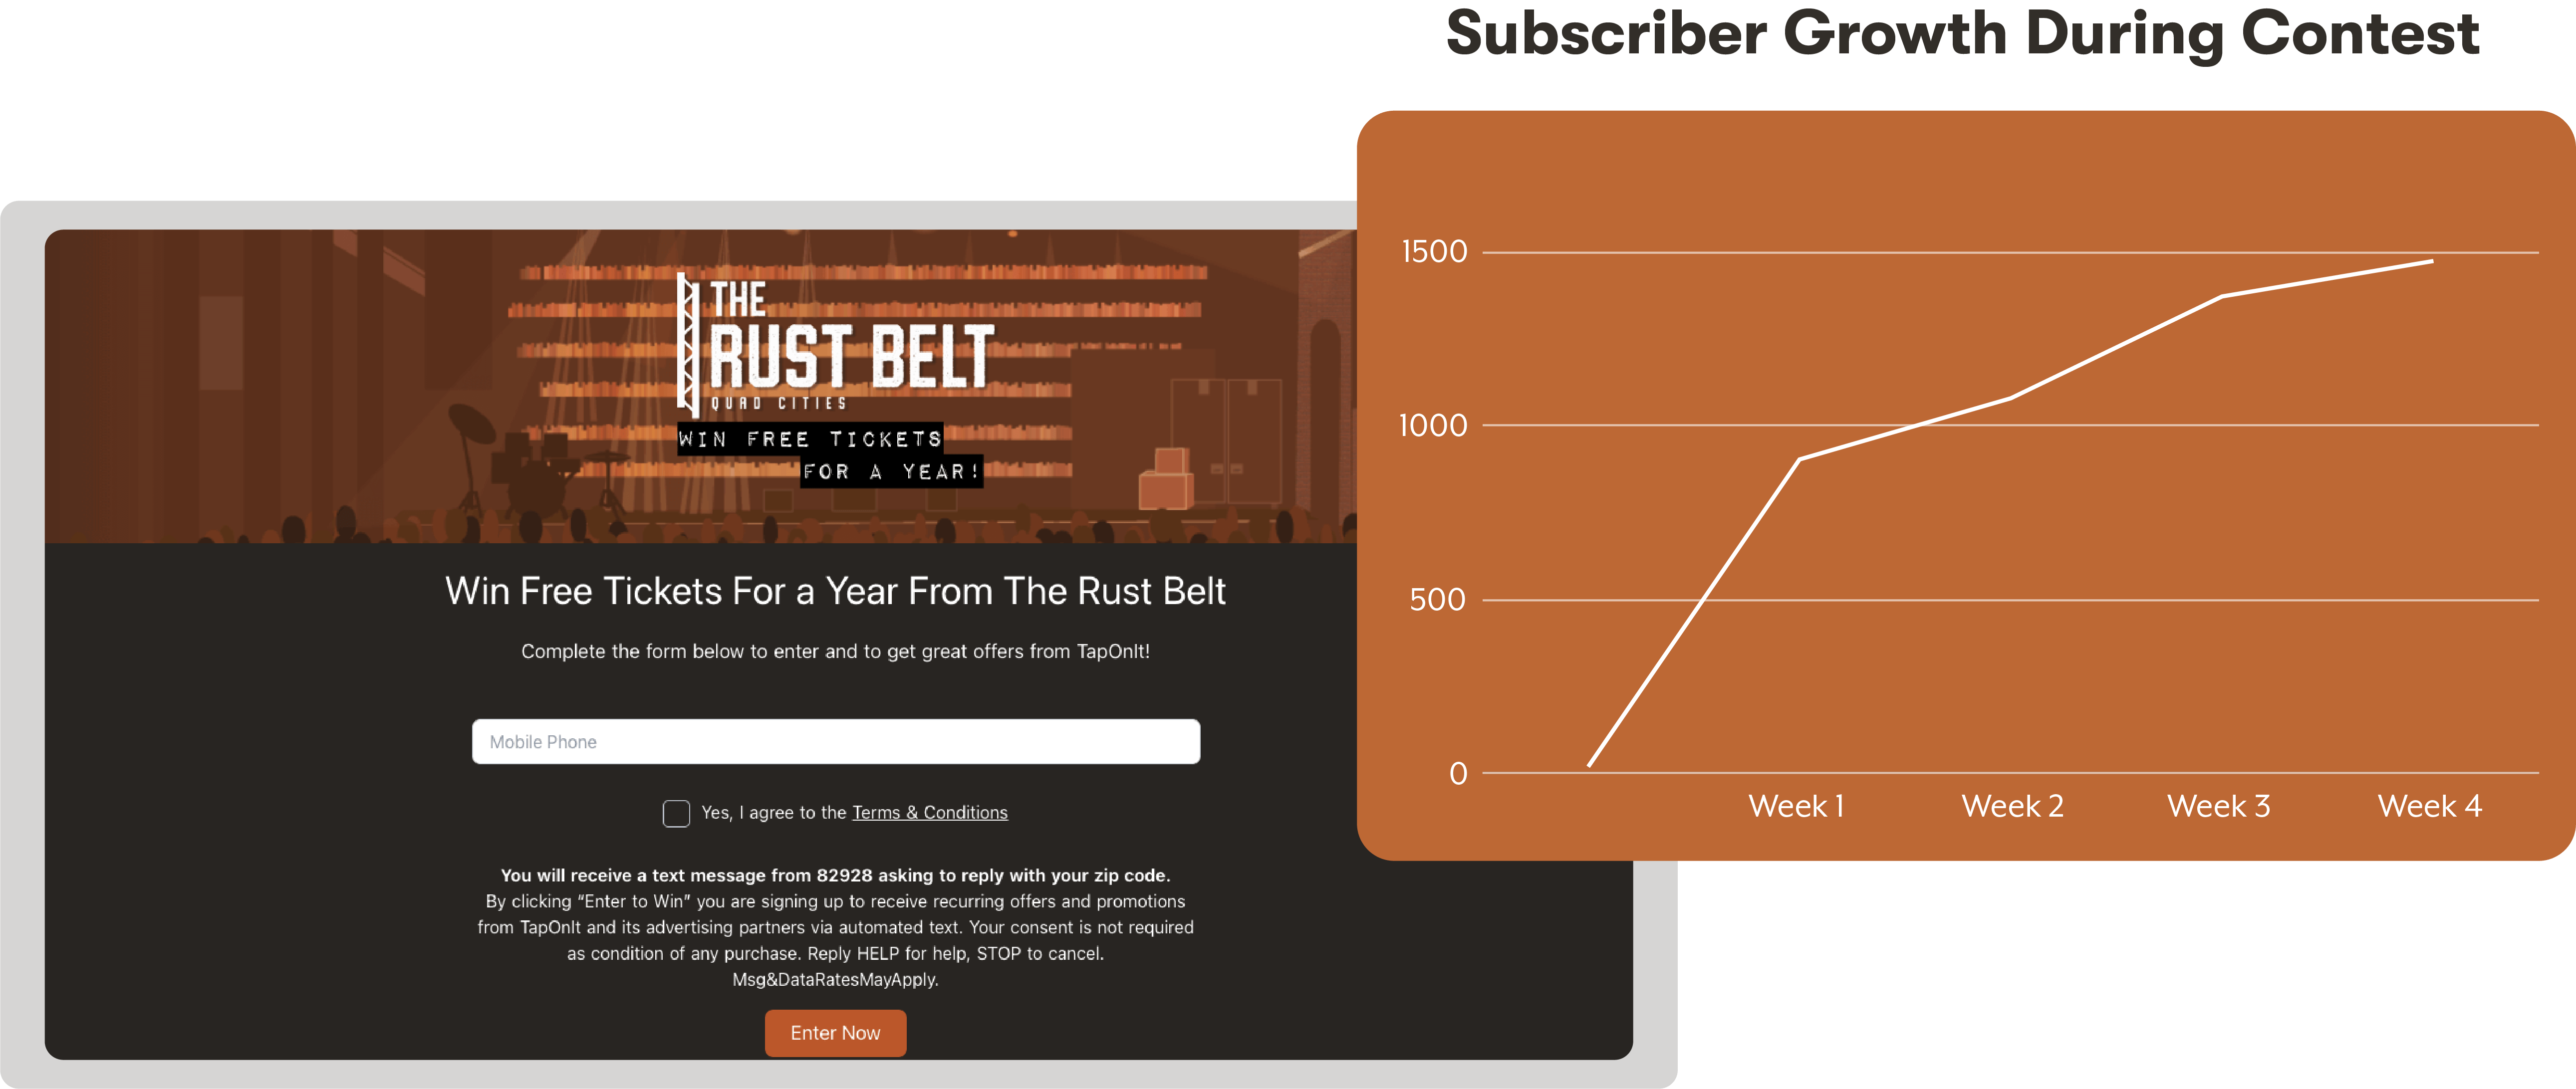 Rust Belt Contest Page and Subscriber Growth Chart